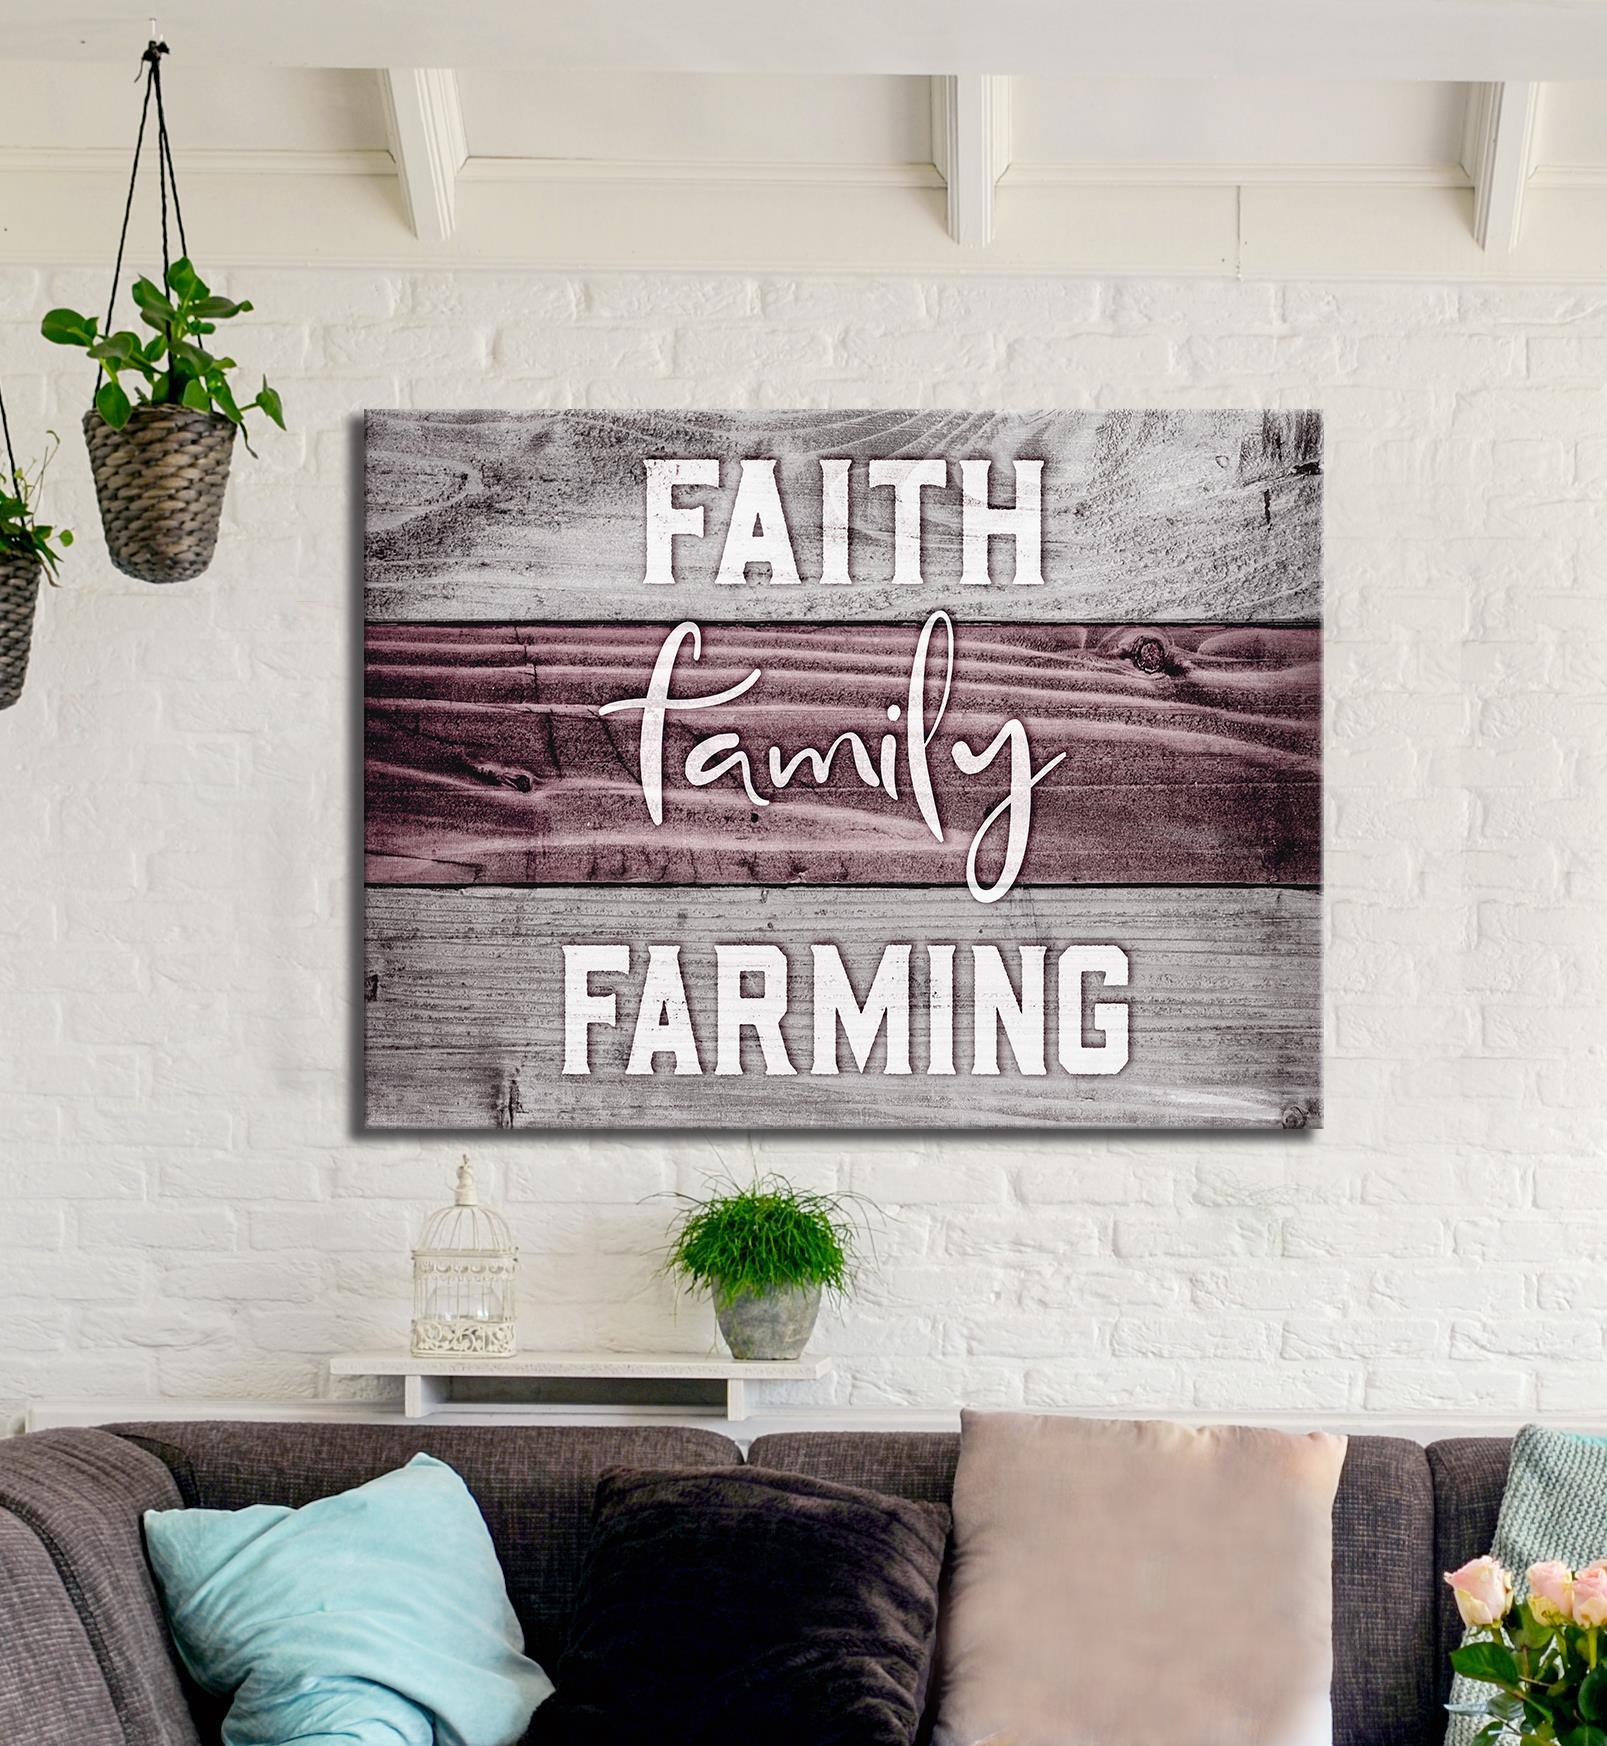 Farm Wall Art: Faith Family Farming  (Wood Frame Ready To Hang)